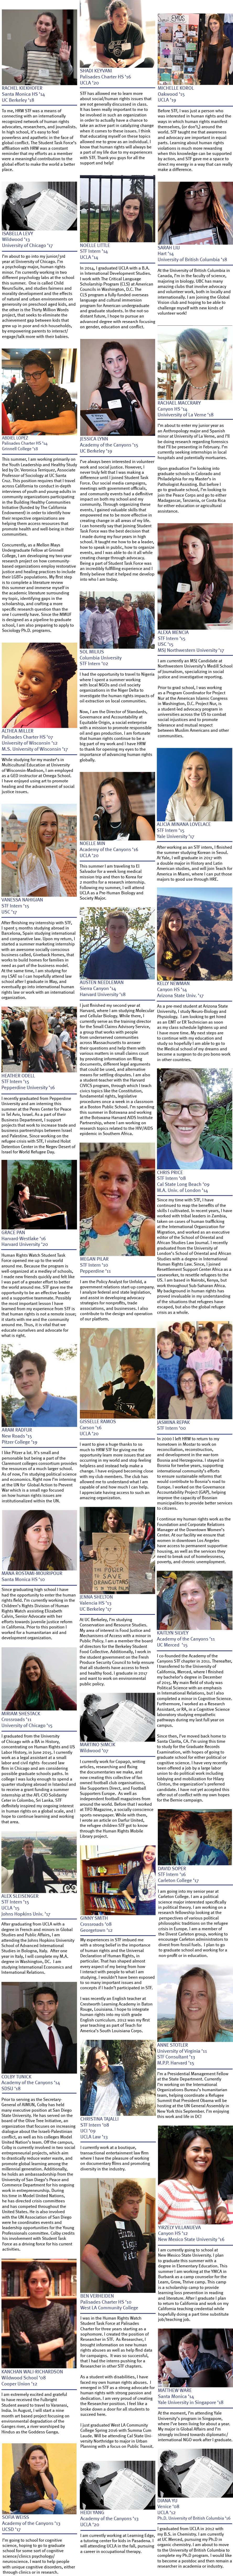 STF Alumni Page for Website 8.24.162